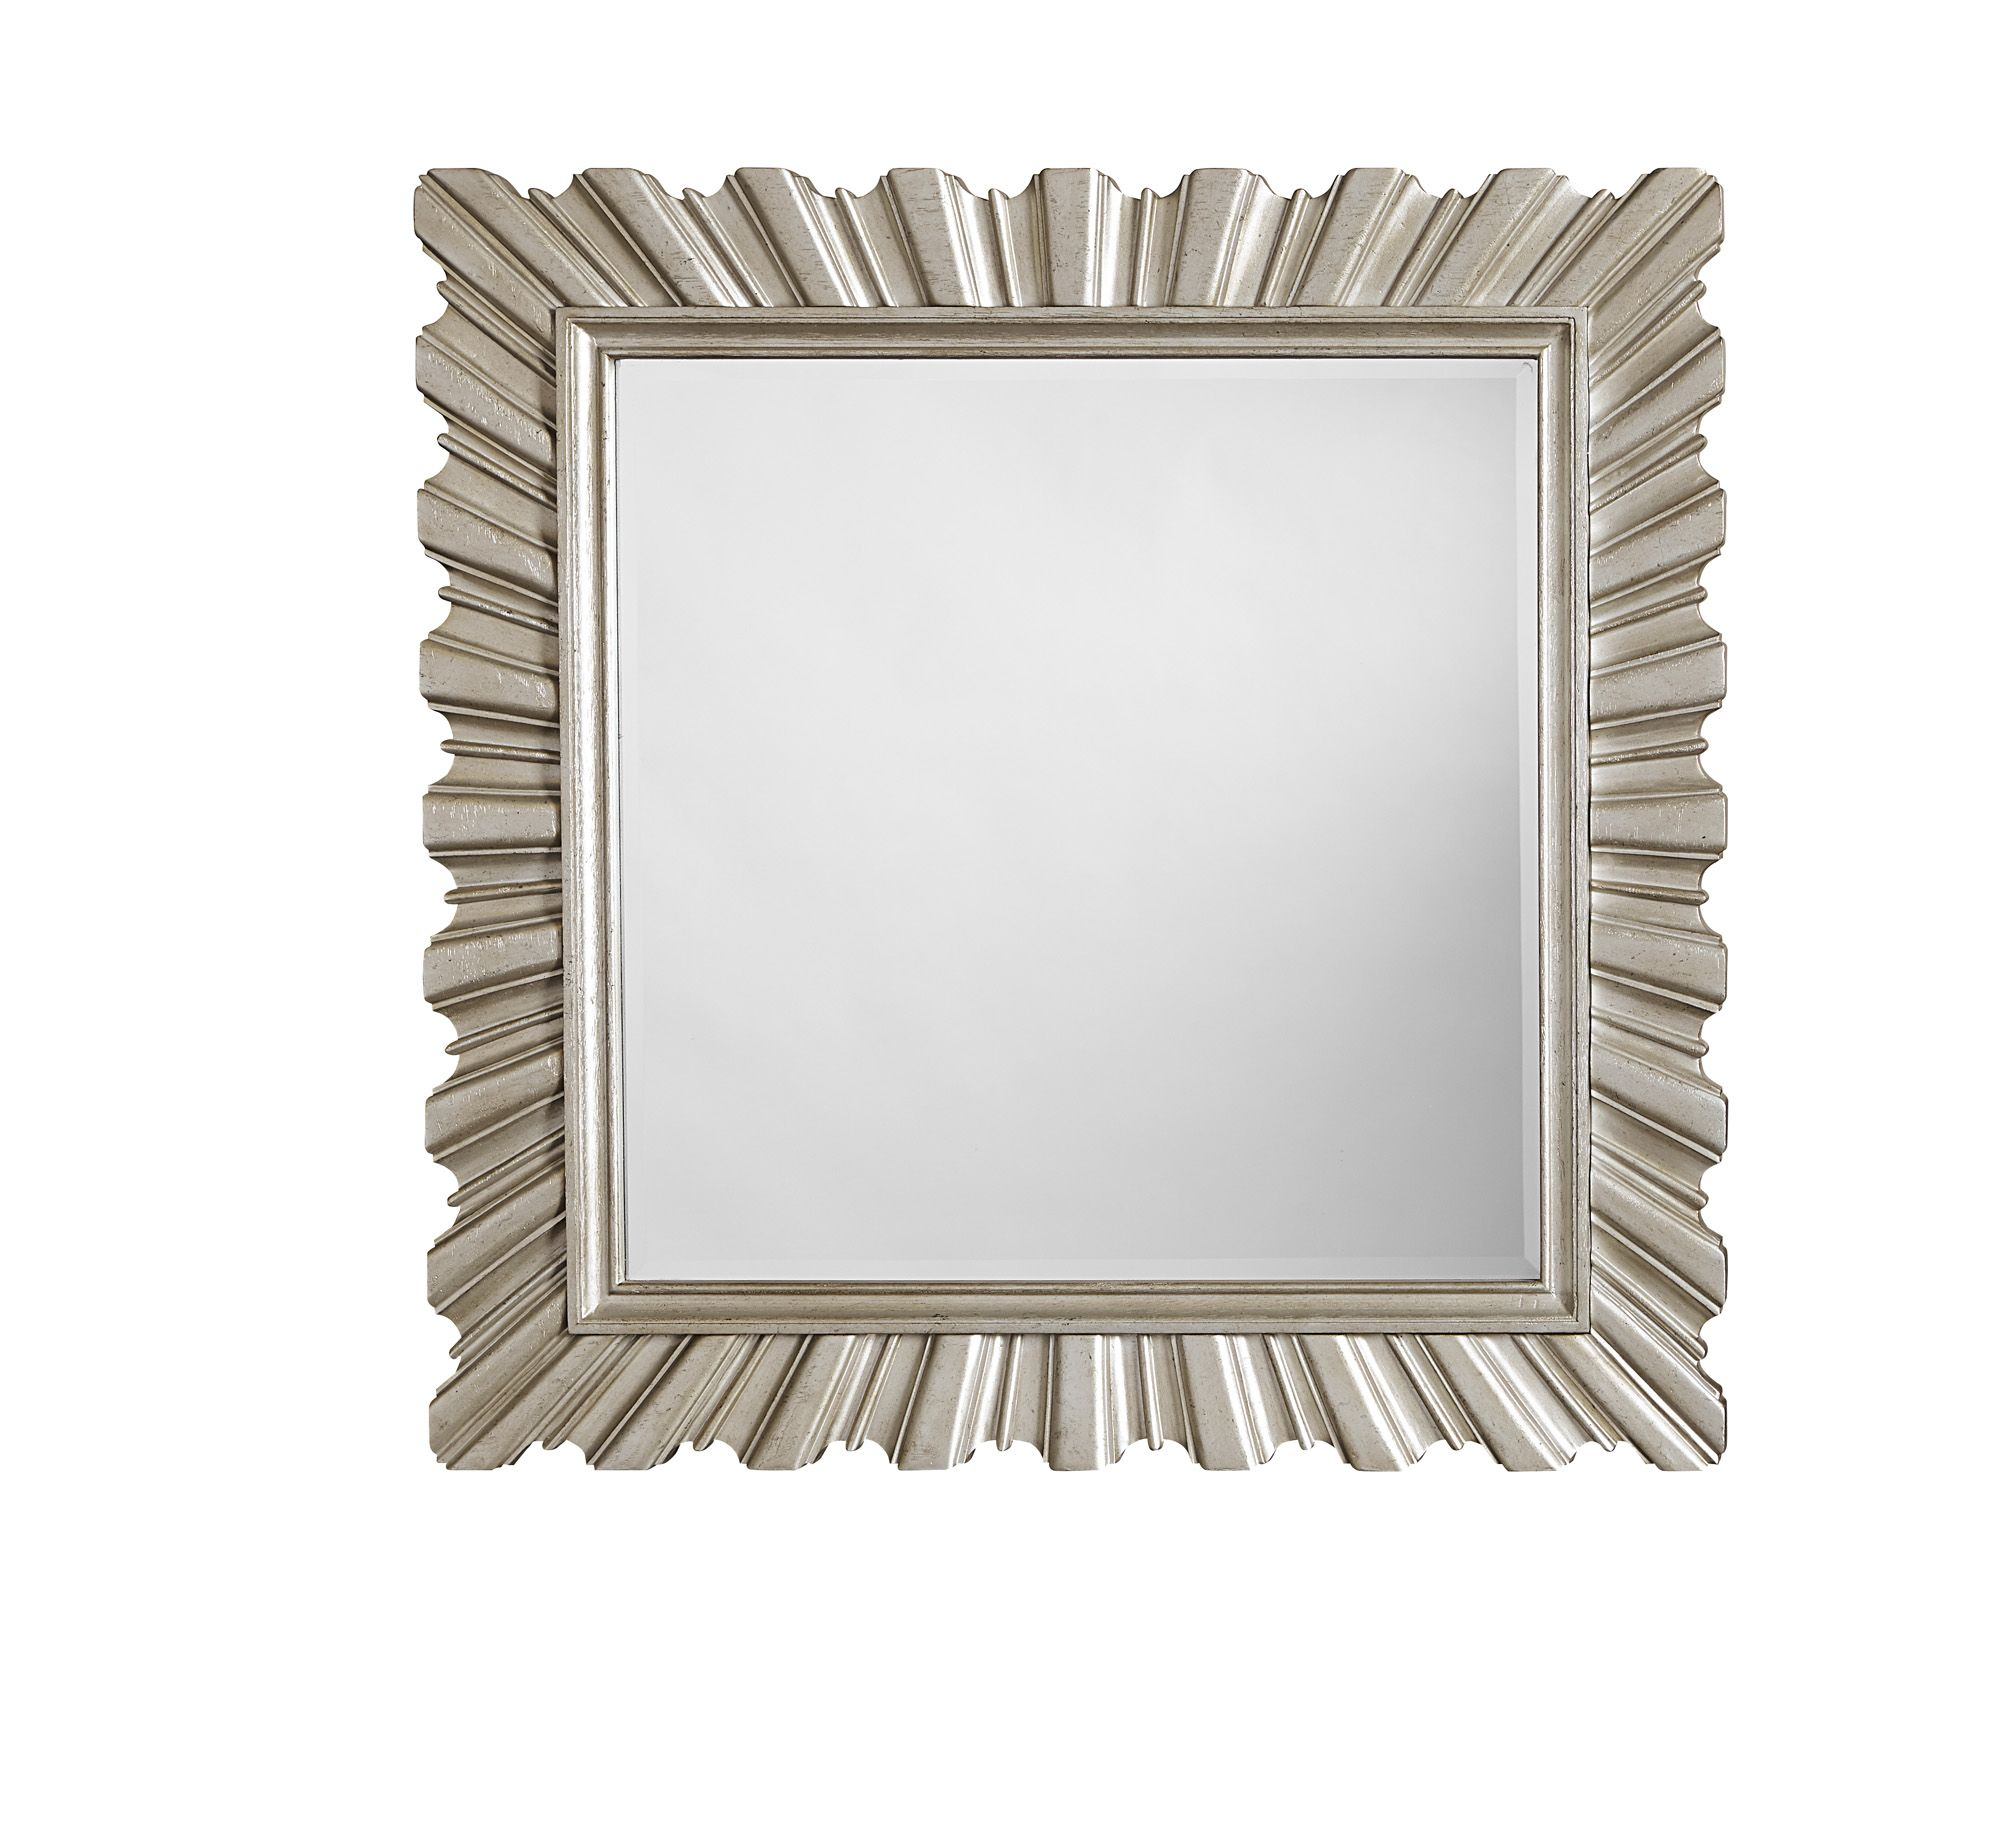 Starlite Accent Mirror | Accent Pieces | Dresser With Mirror Inside Medallion Accent Mirrors (View 11 of 20)